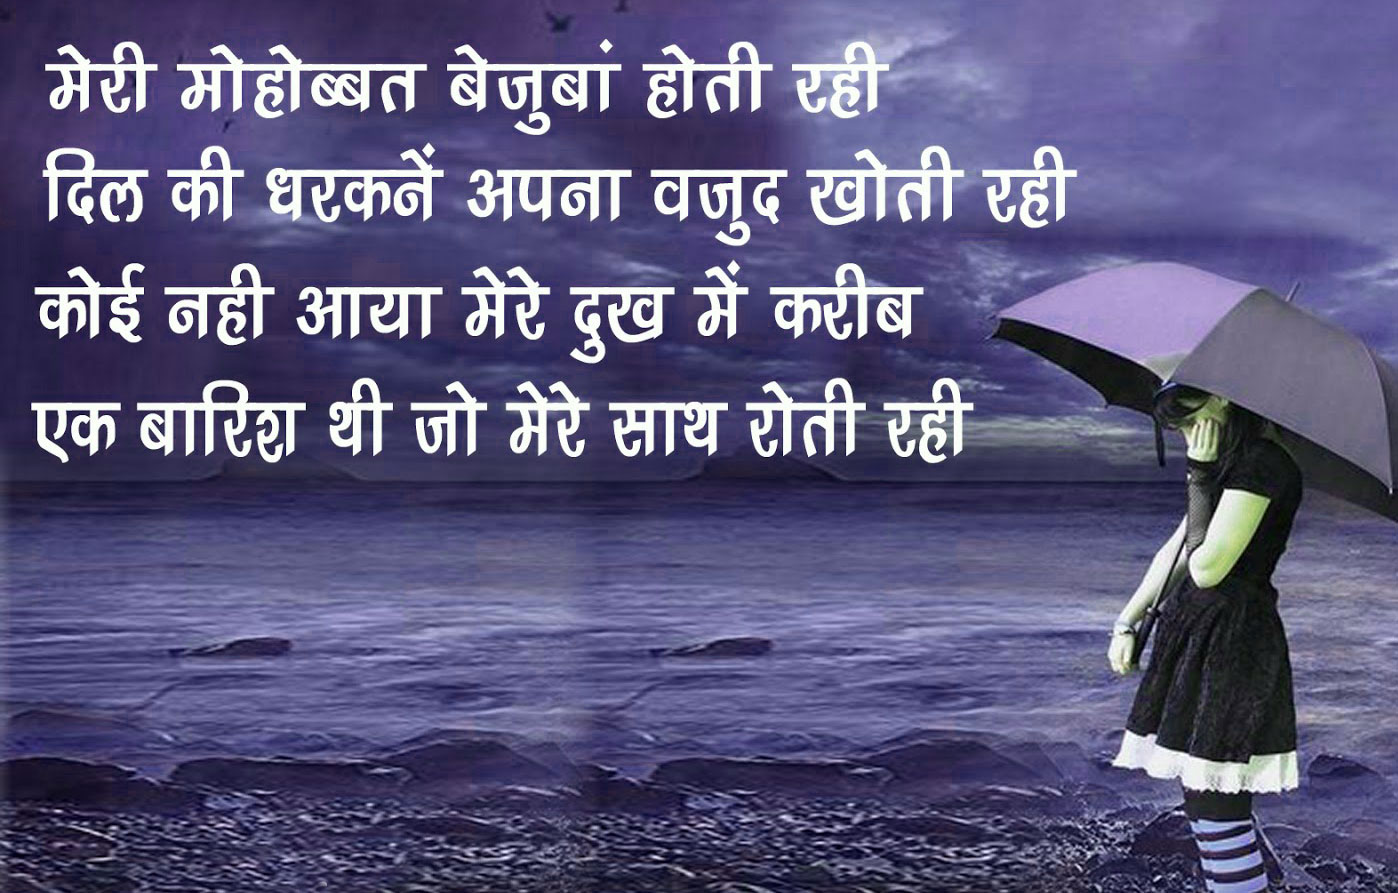 Hindi-Bewafa-Shayari-Images-74